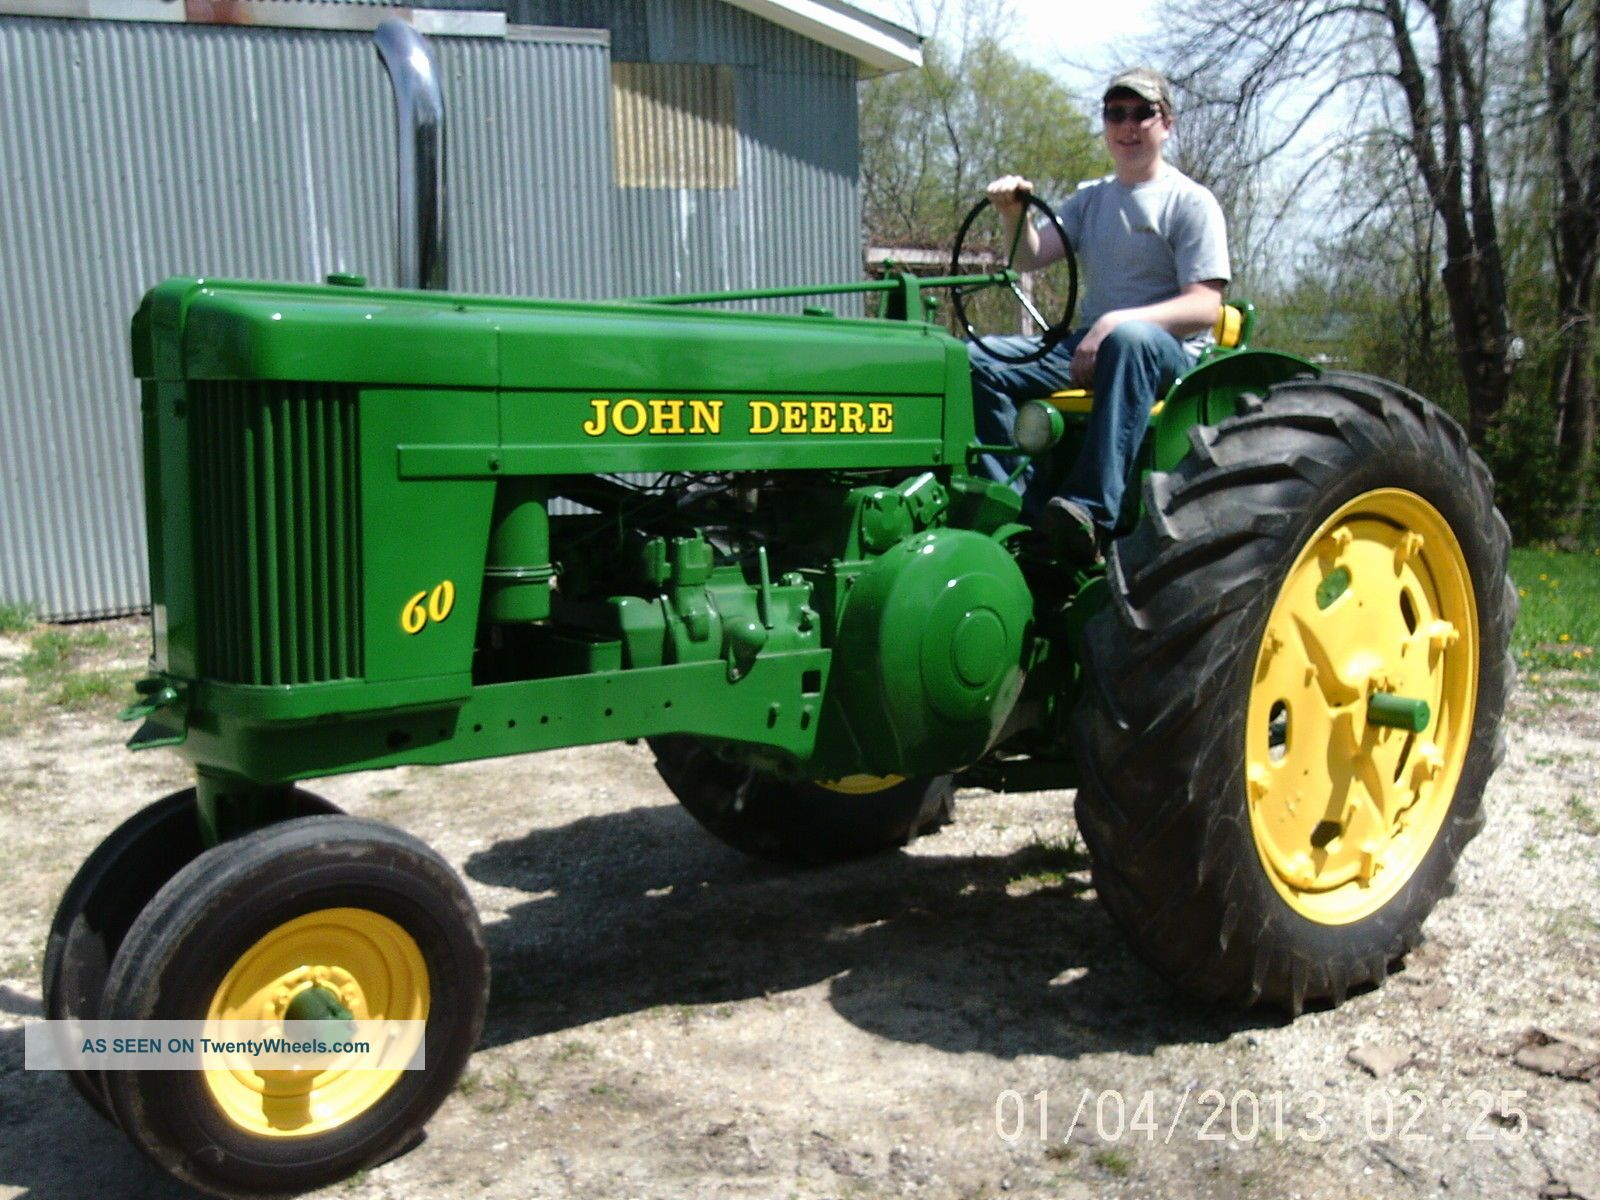 John Deere Tractor Shows : John deere show and parade quality tractor